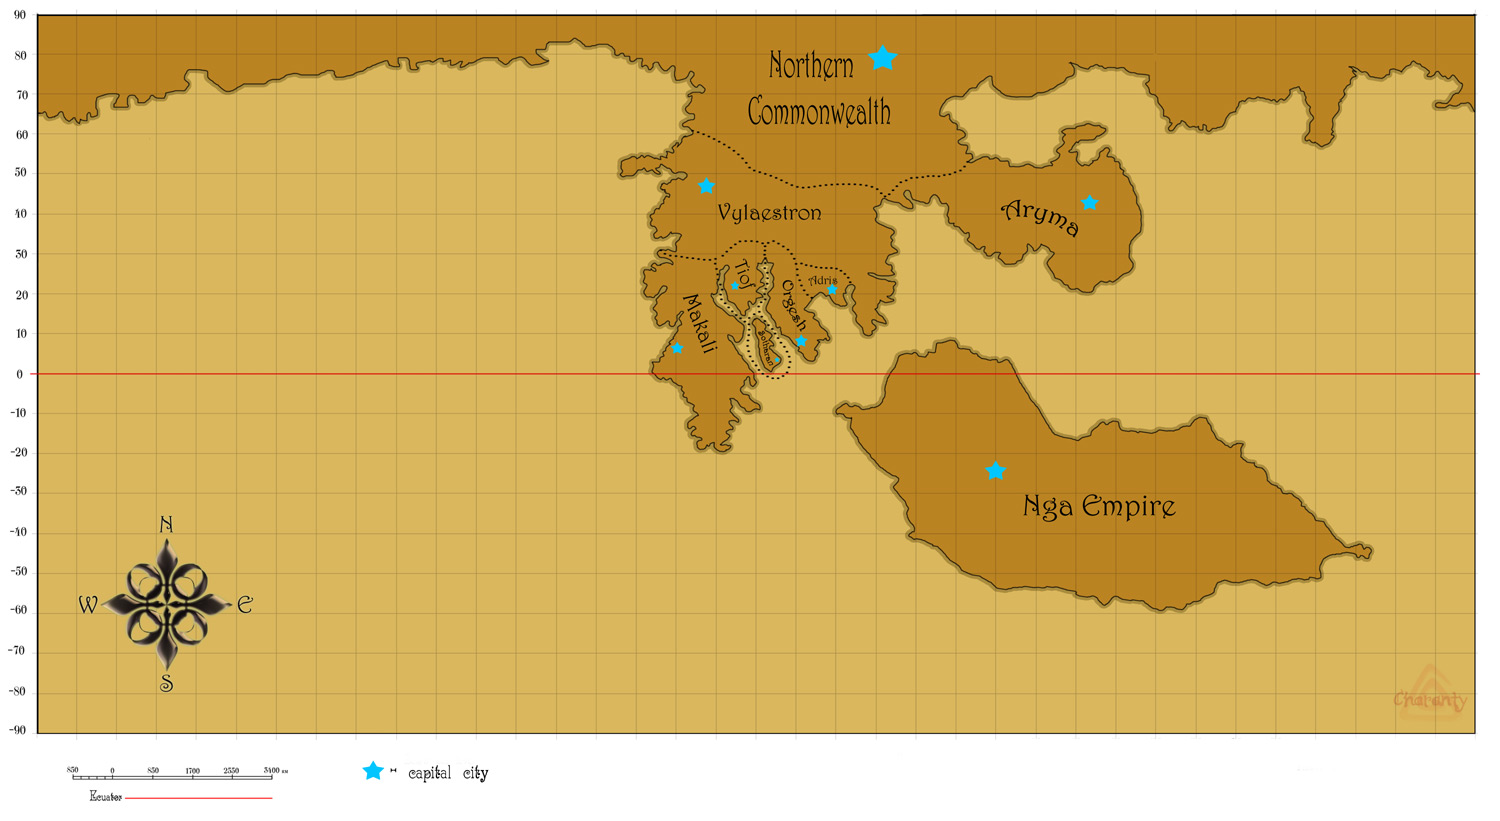 Map of Uryun by Charanty